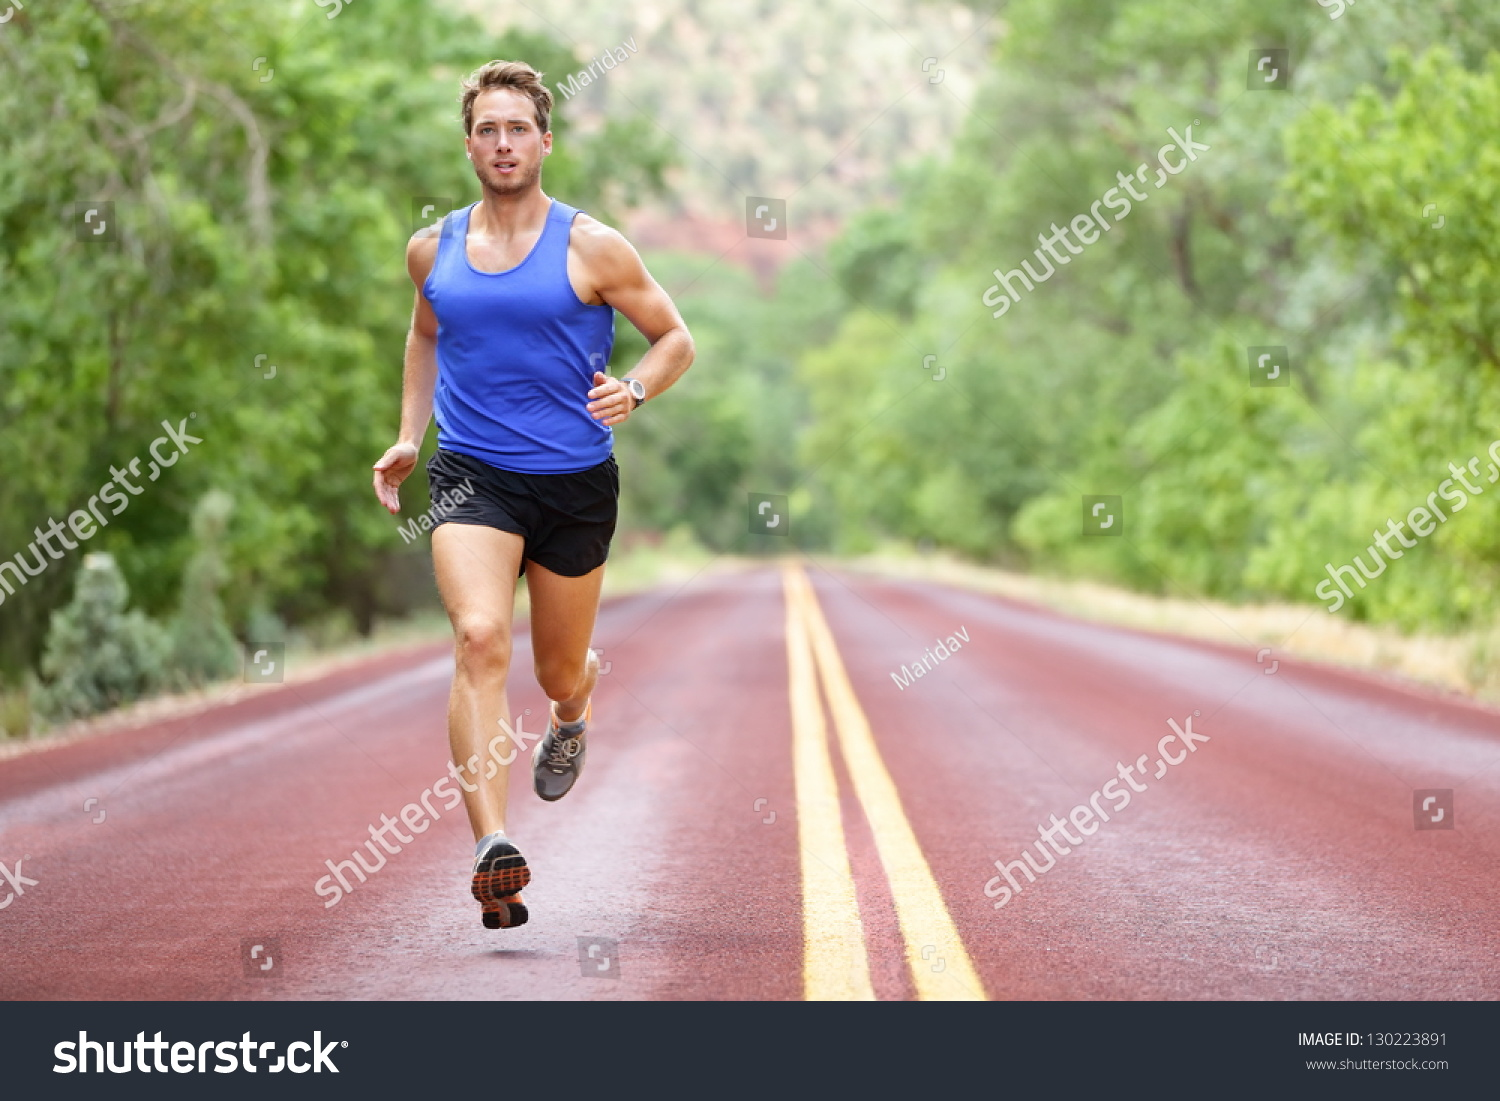 Running Athlete Man Male Runner Sprinting Stock Photo ...